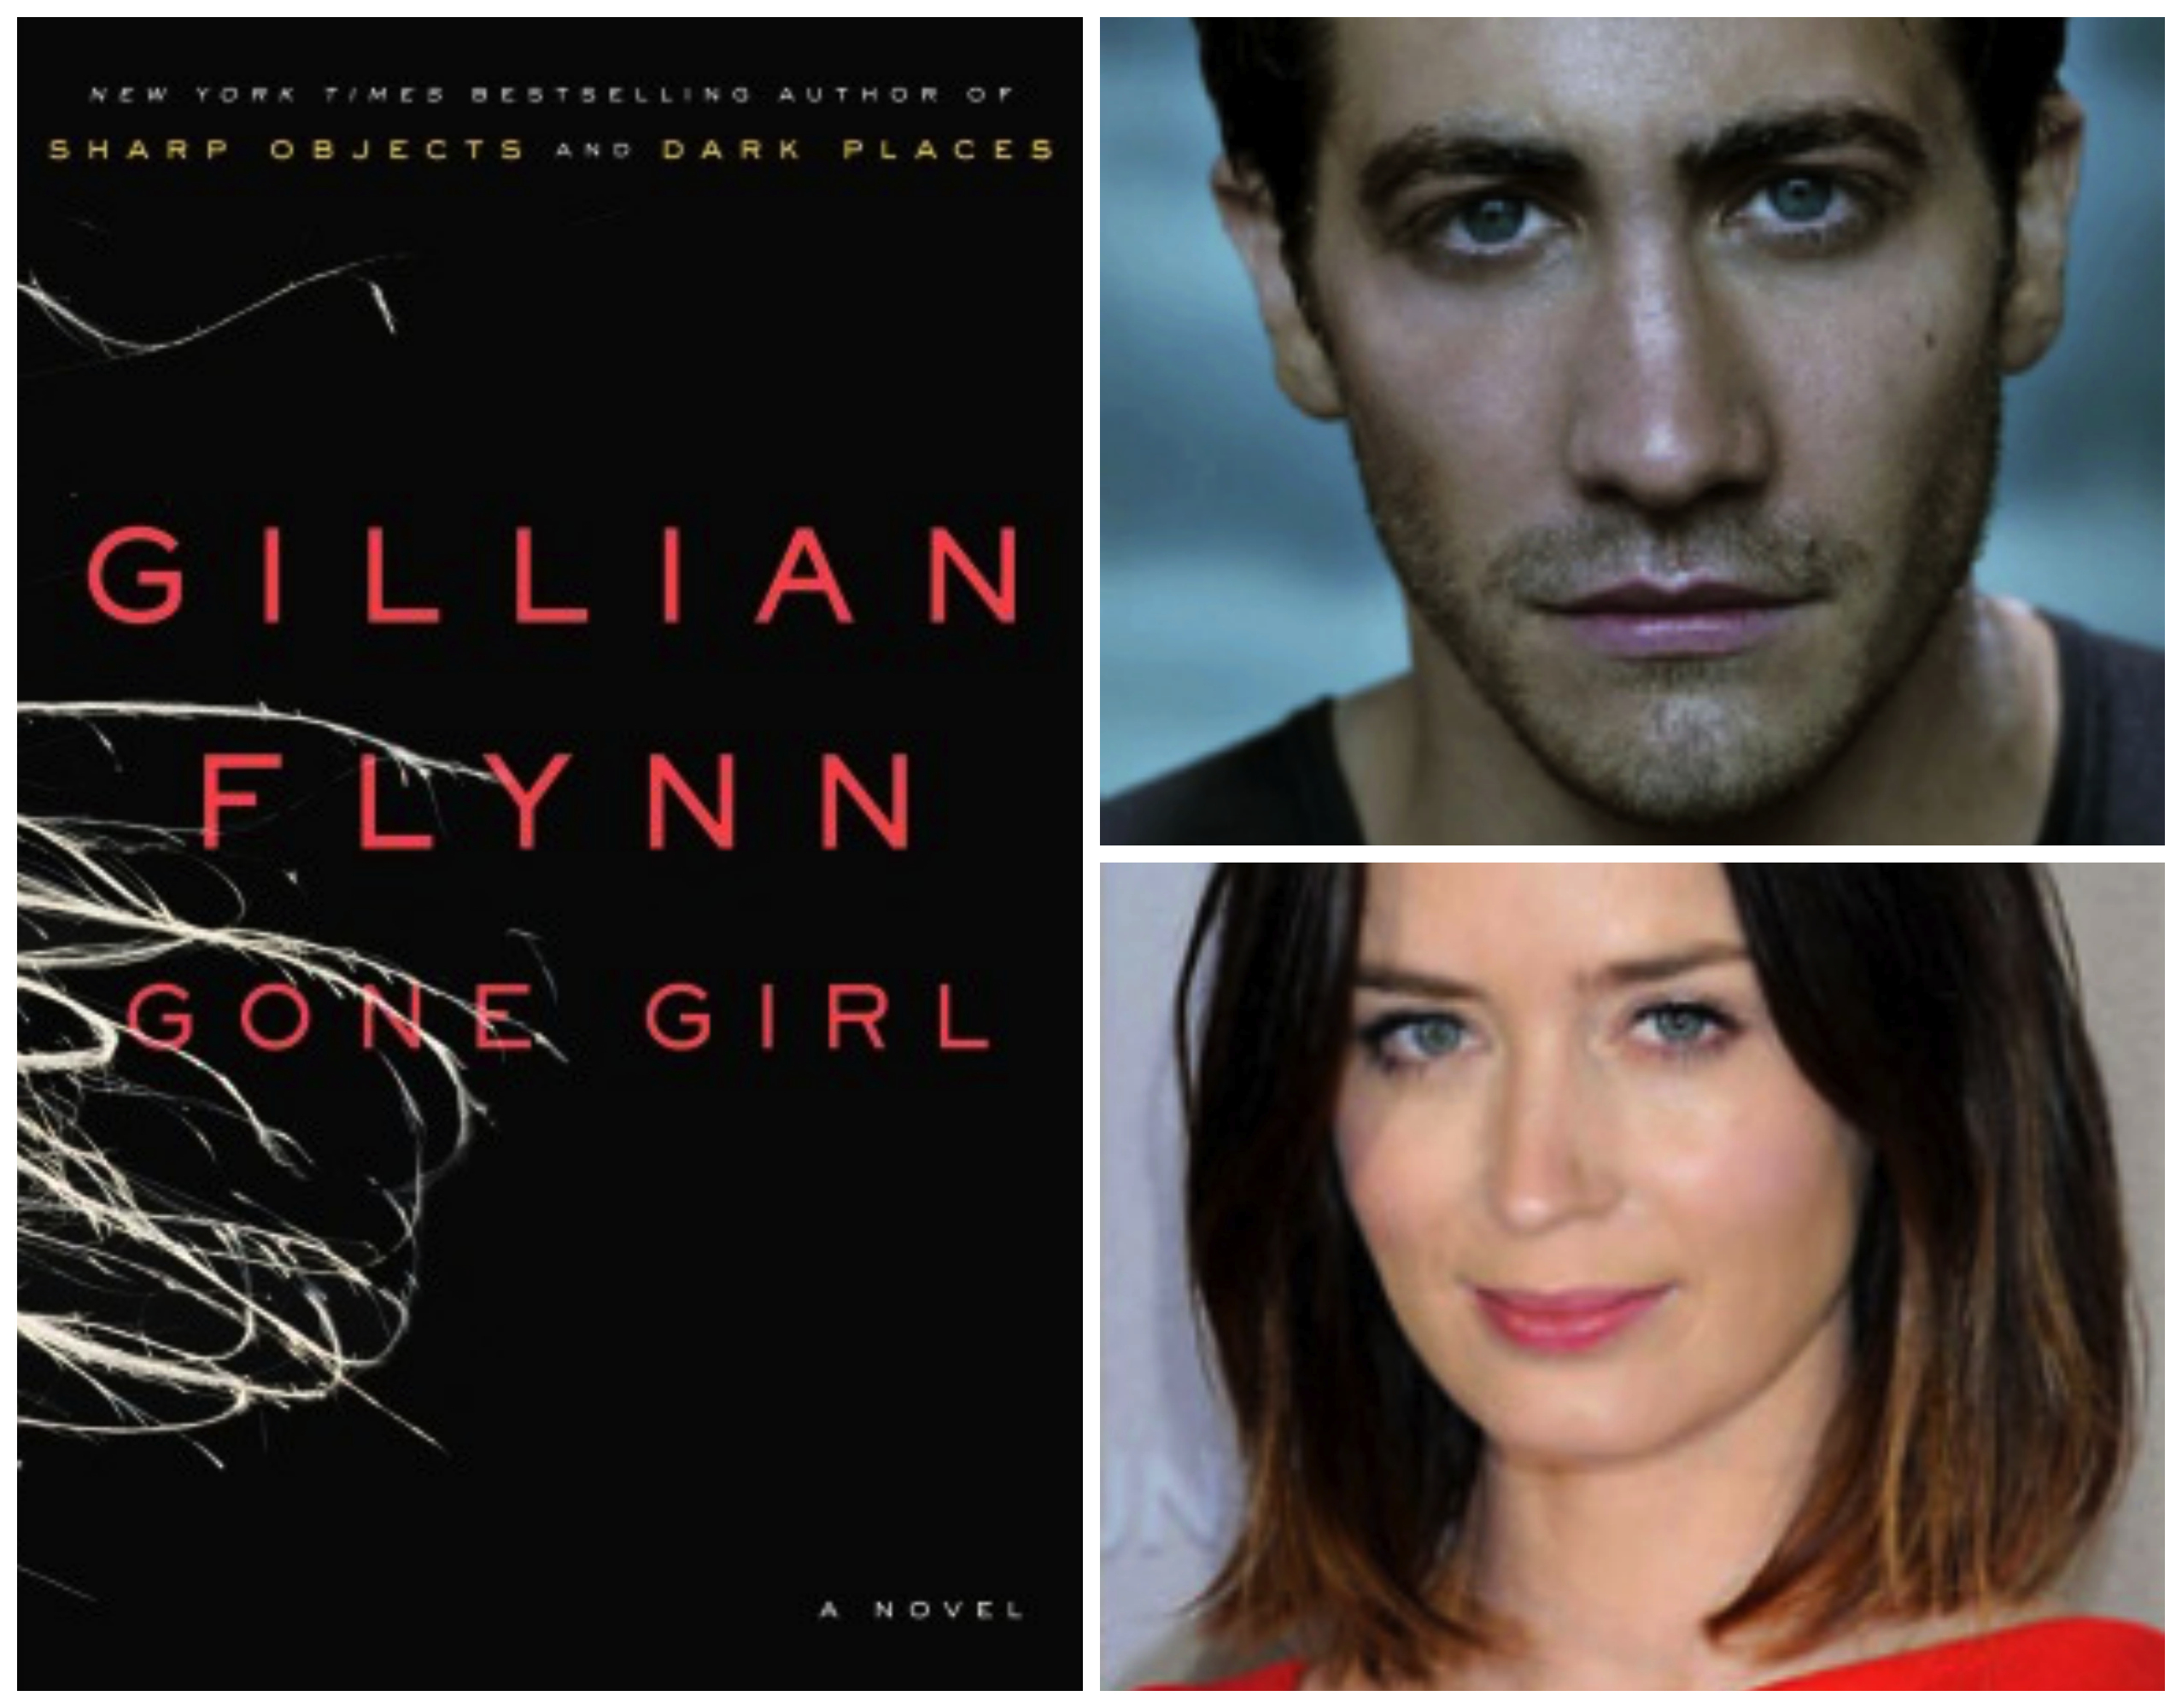 Casting GONE GIRL by Gillian Flynn